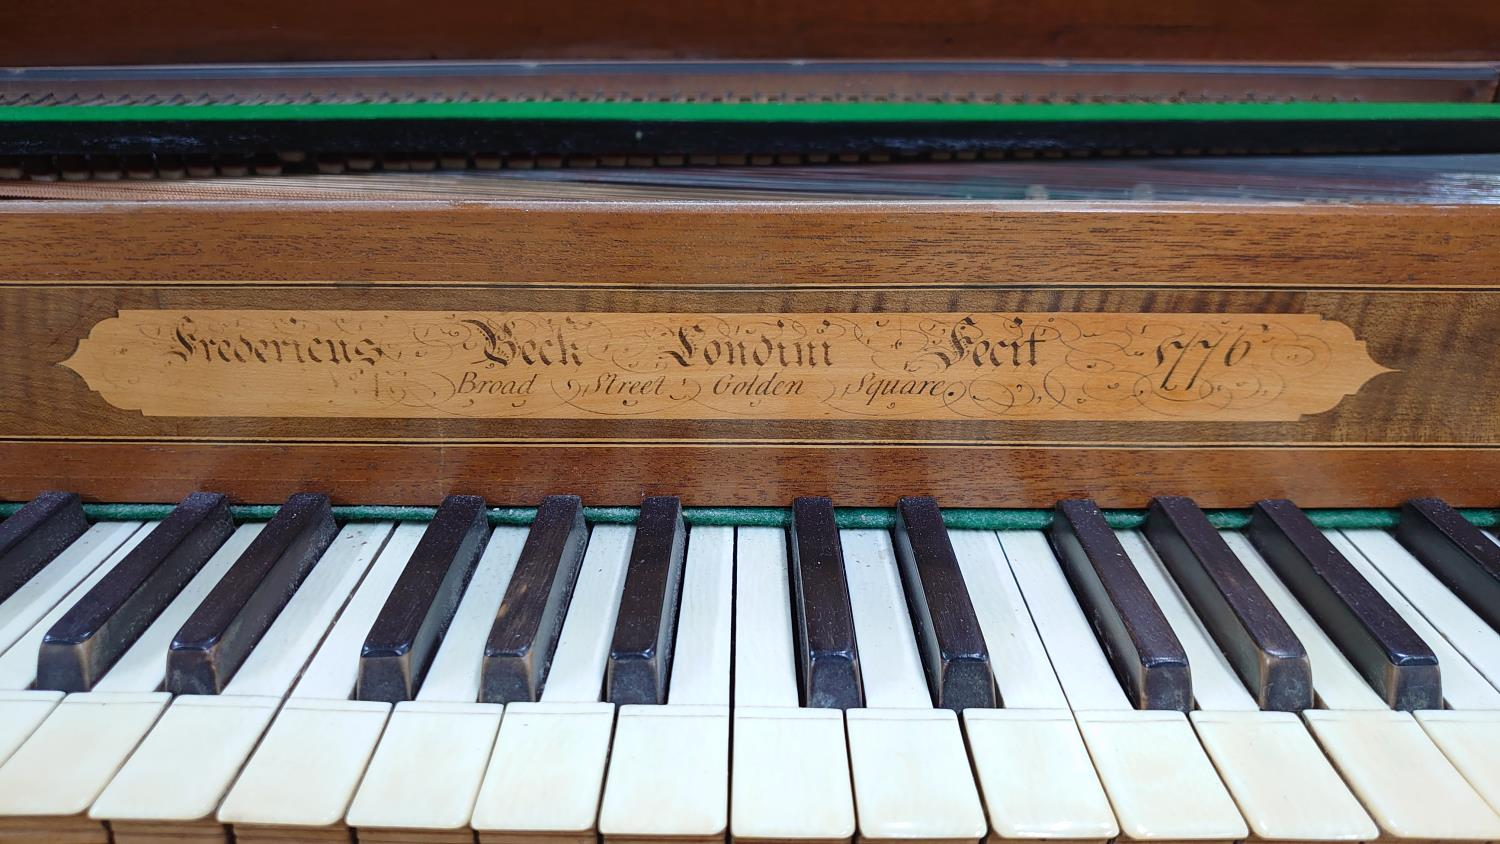 Square piano by Frederick Beck, London 1776, the case of mahogany with chequered stringing, the - Image 2 of 3